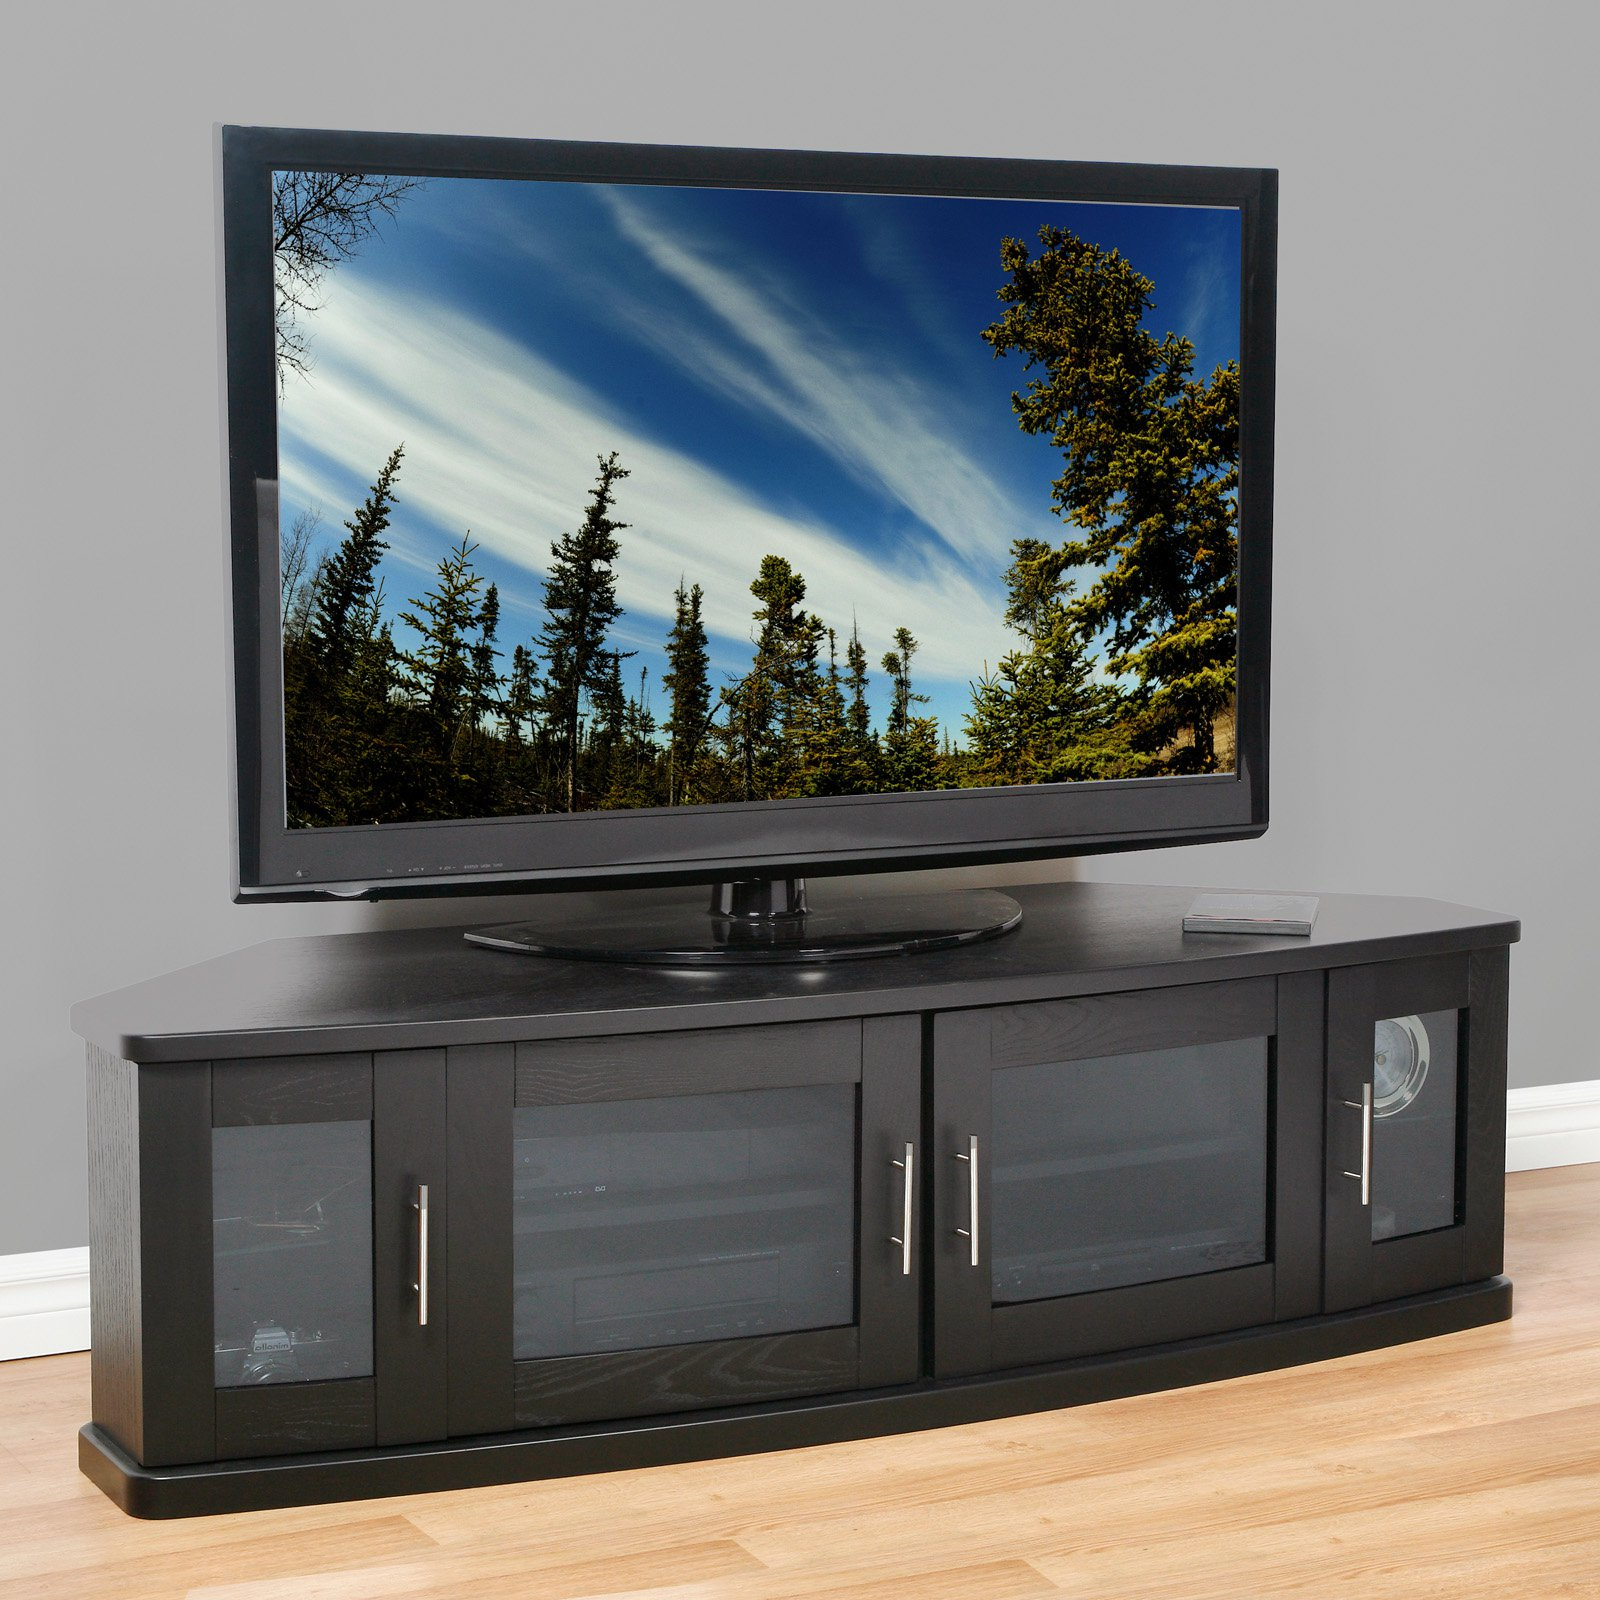 Plateau Newport 62 Inch Corner Tv Stand In Black – Walmart With Regard To Well Liked Wooden Tv Stands With Glass Doors (Gallery 16 of 20)